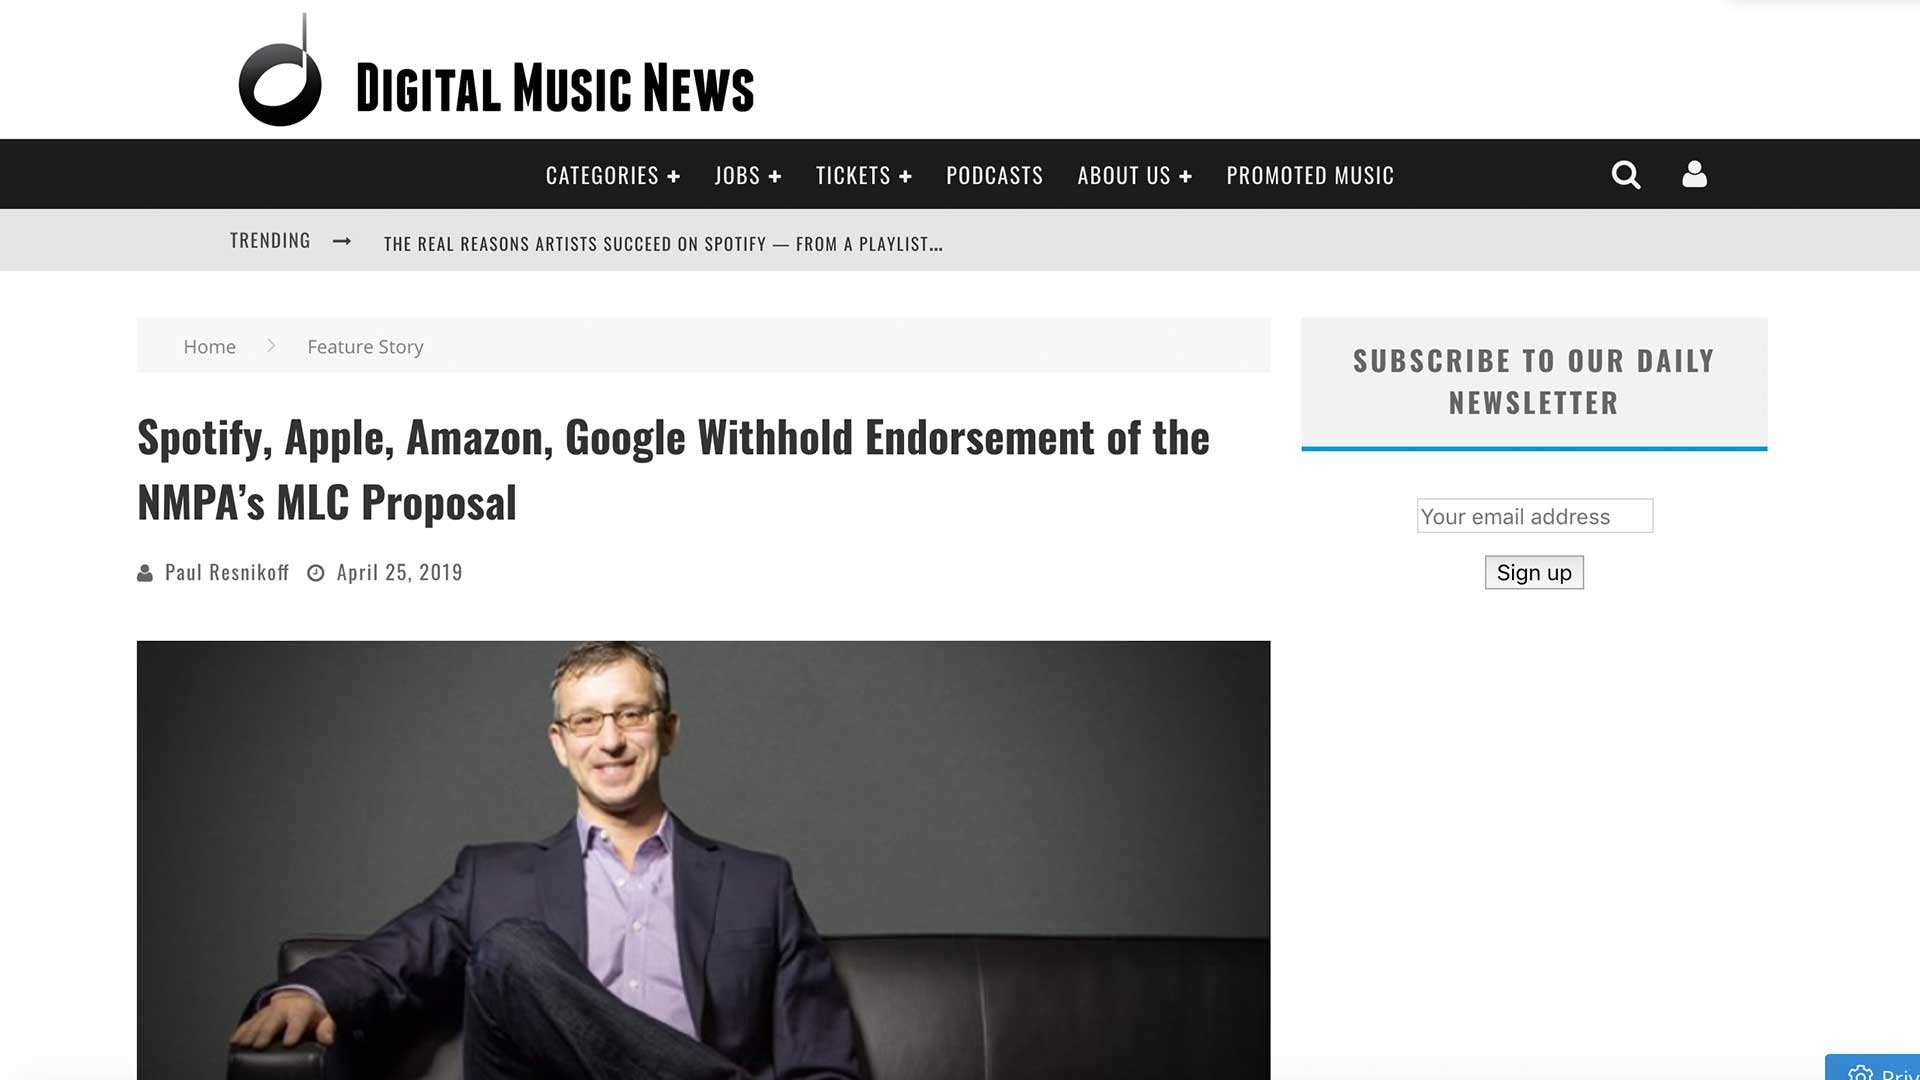 Fairness Rocks News Spotify, Apple, Amazon, Google Withhold Endorsement of the NMPA's MLC Proposal